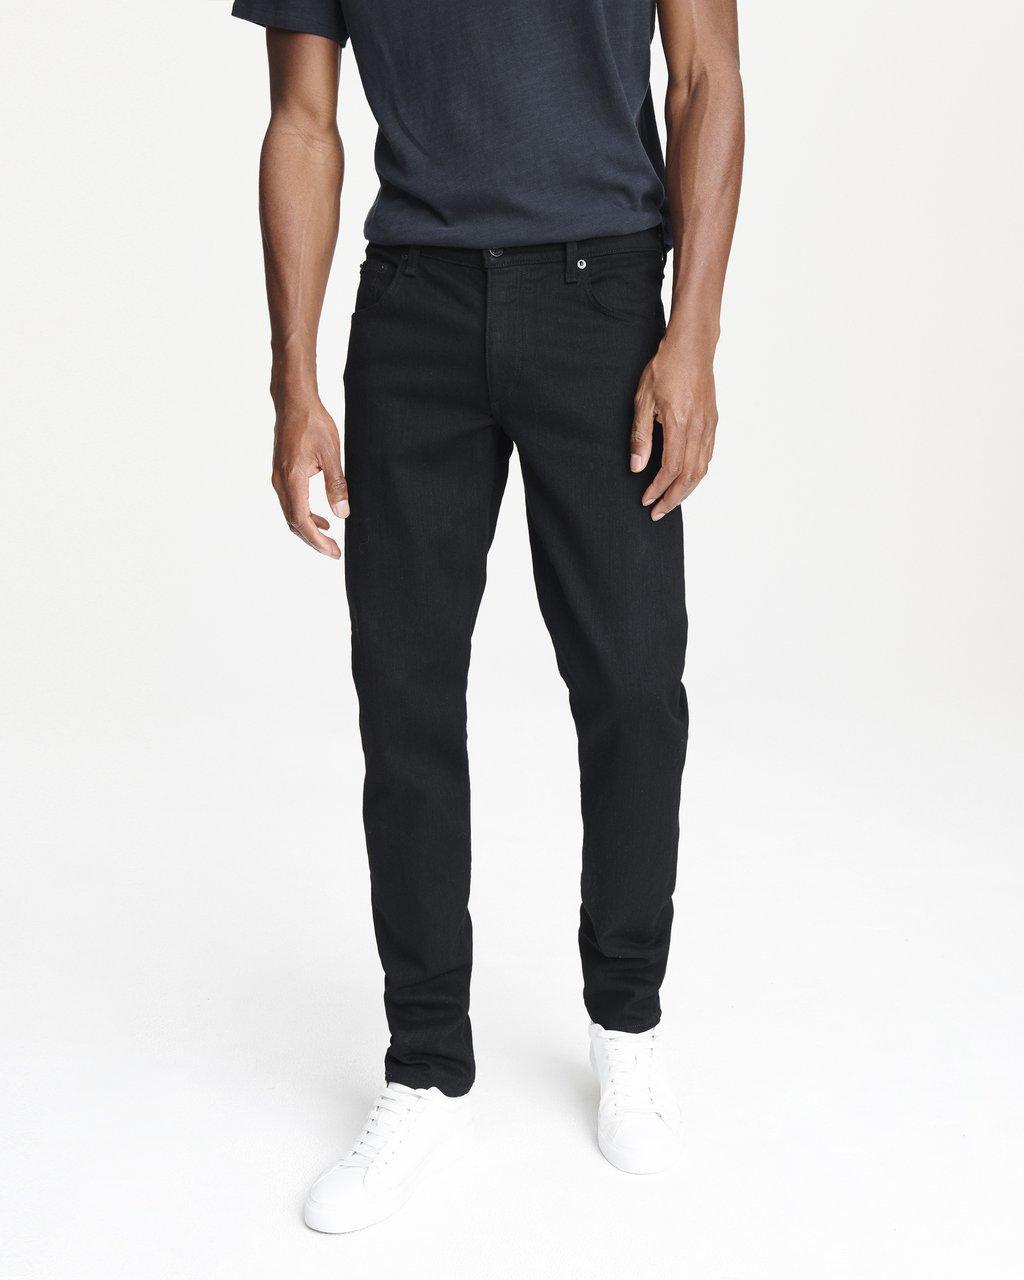 FIT 2 IN BLACK - 30 INCH INSEAM AVAILABLE